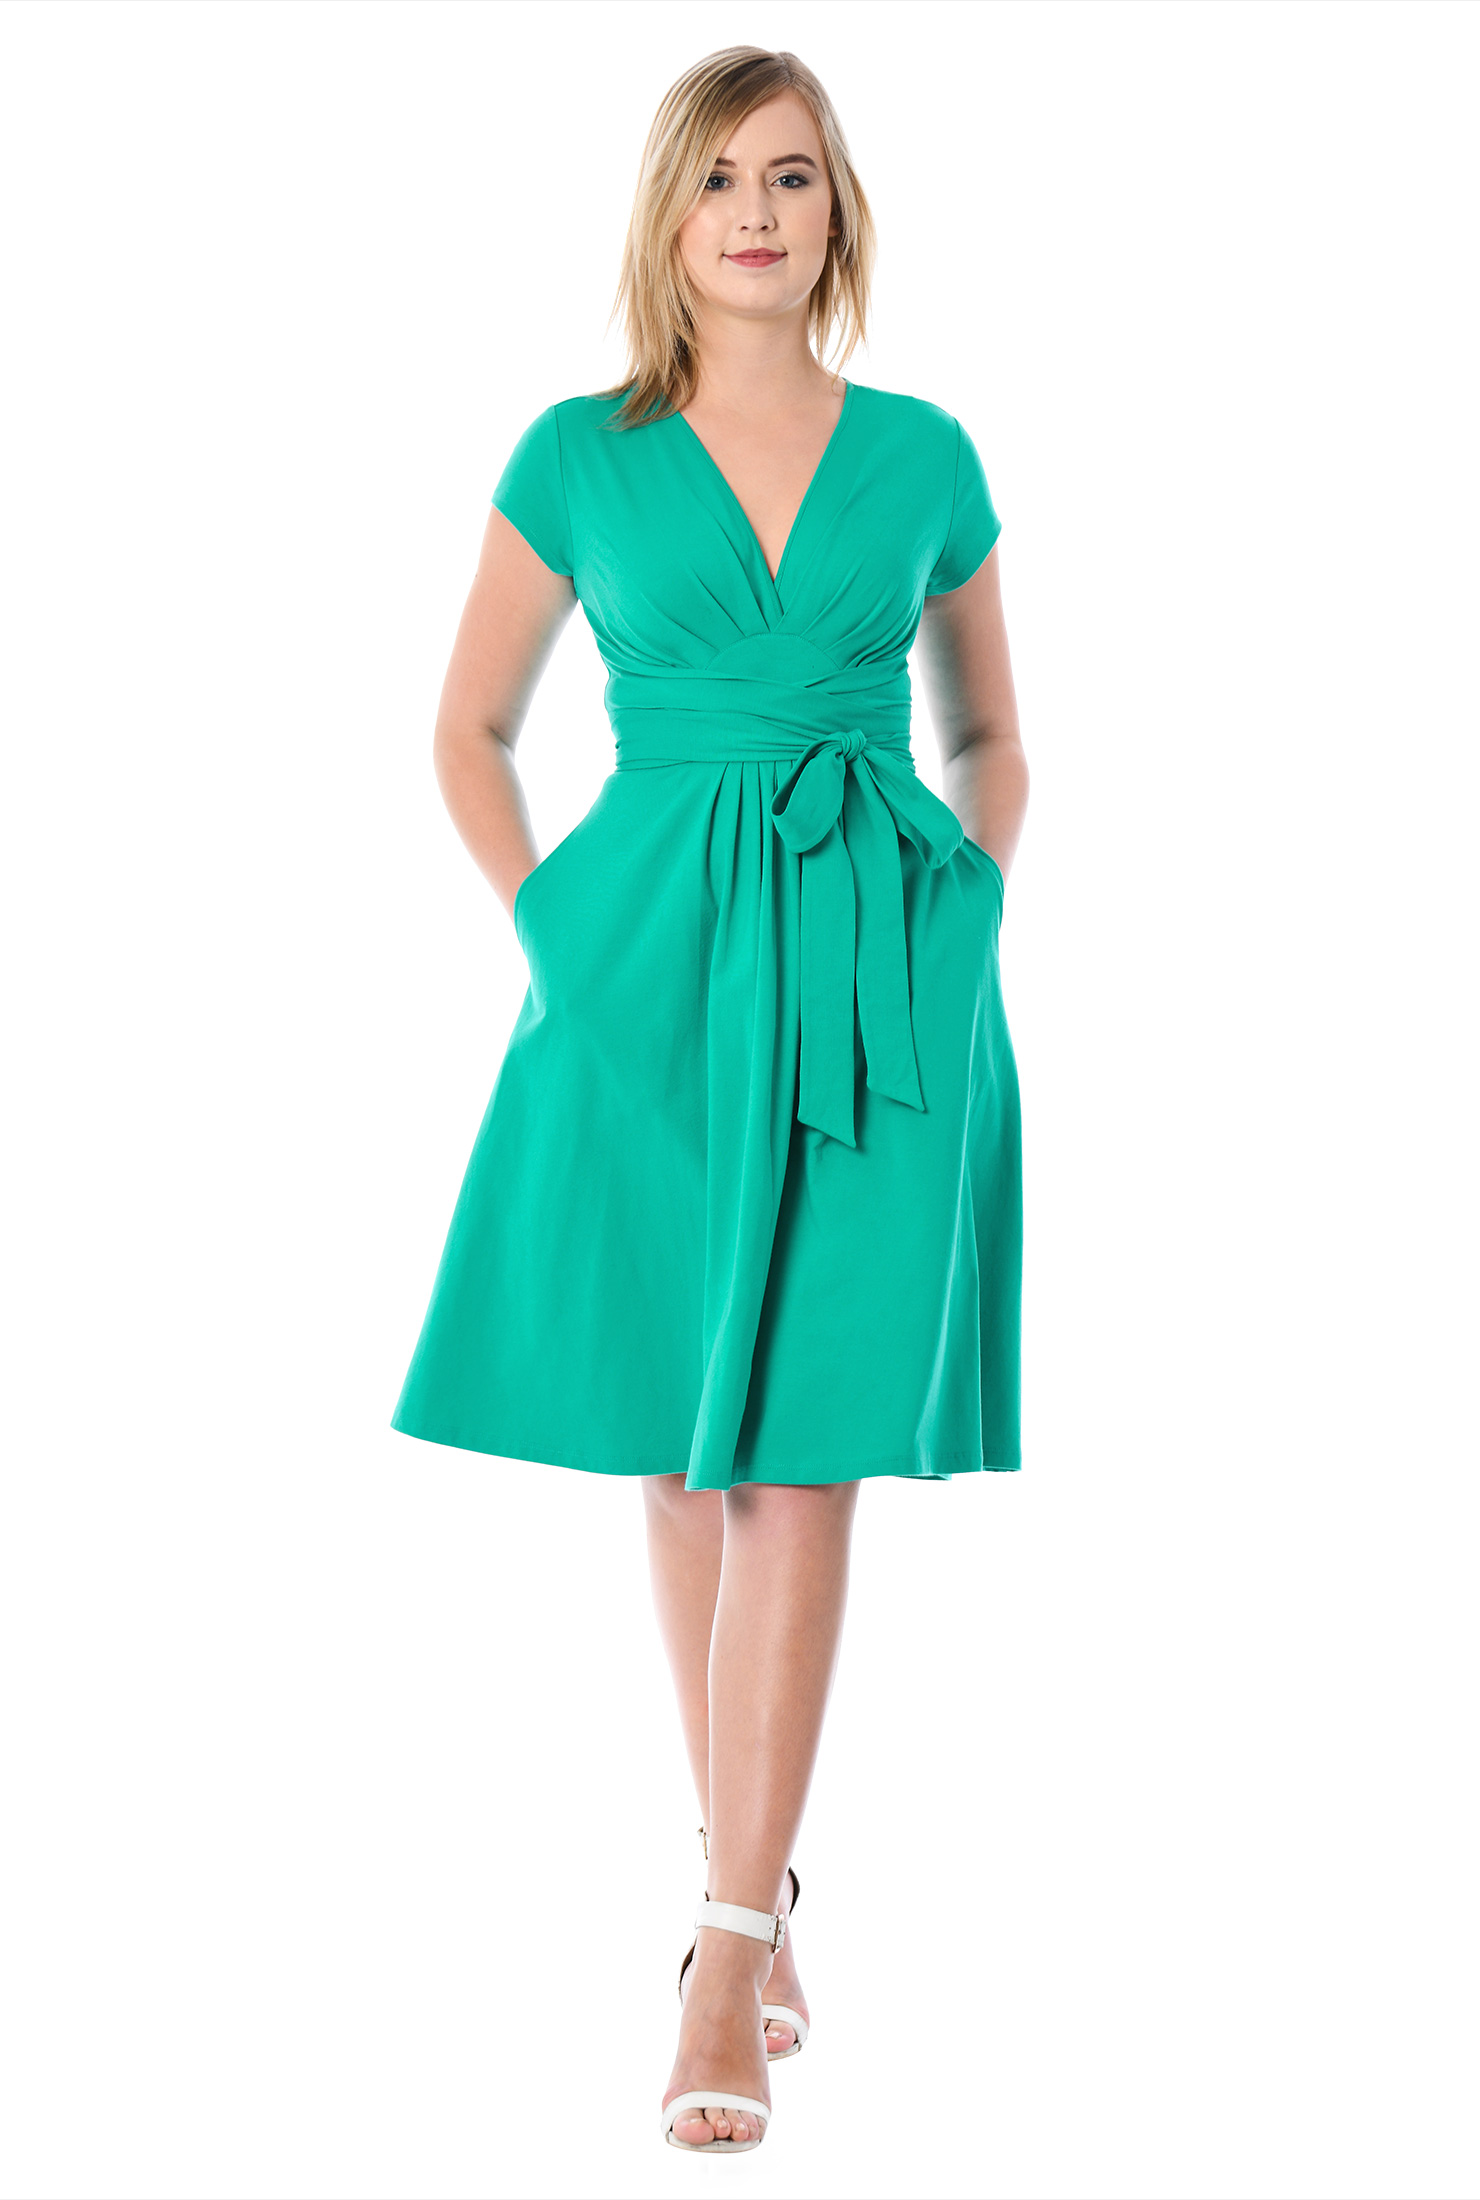 eShakti Women's Tie waist empire cotton knit dress